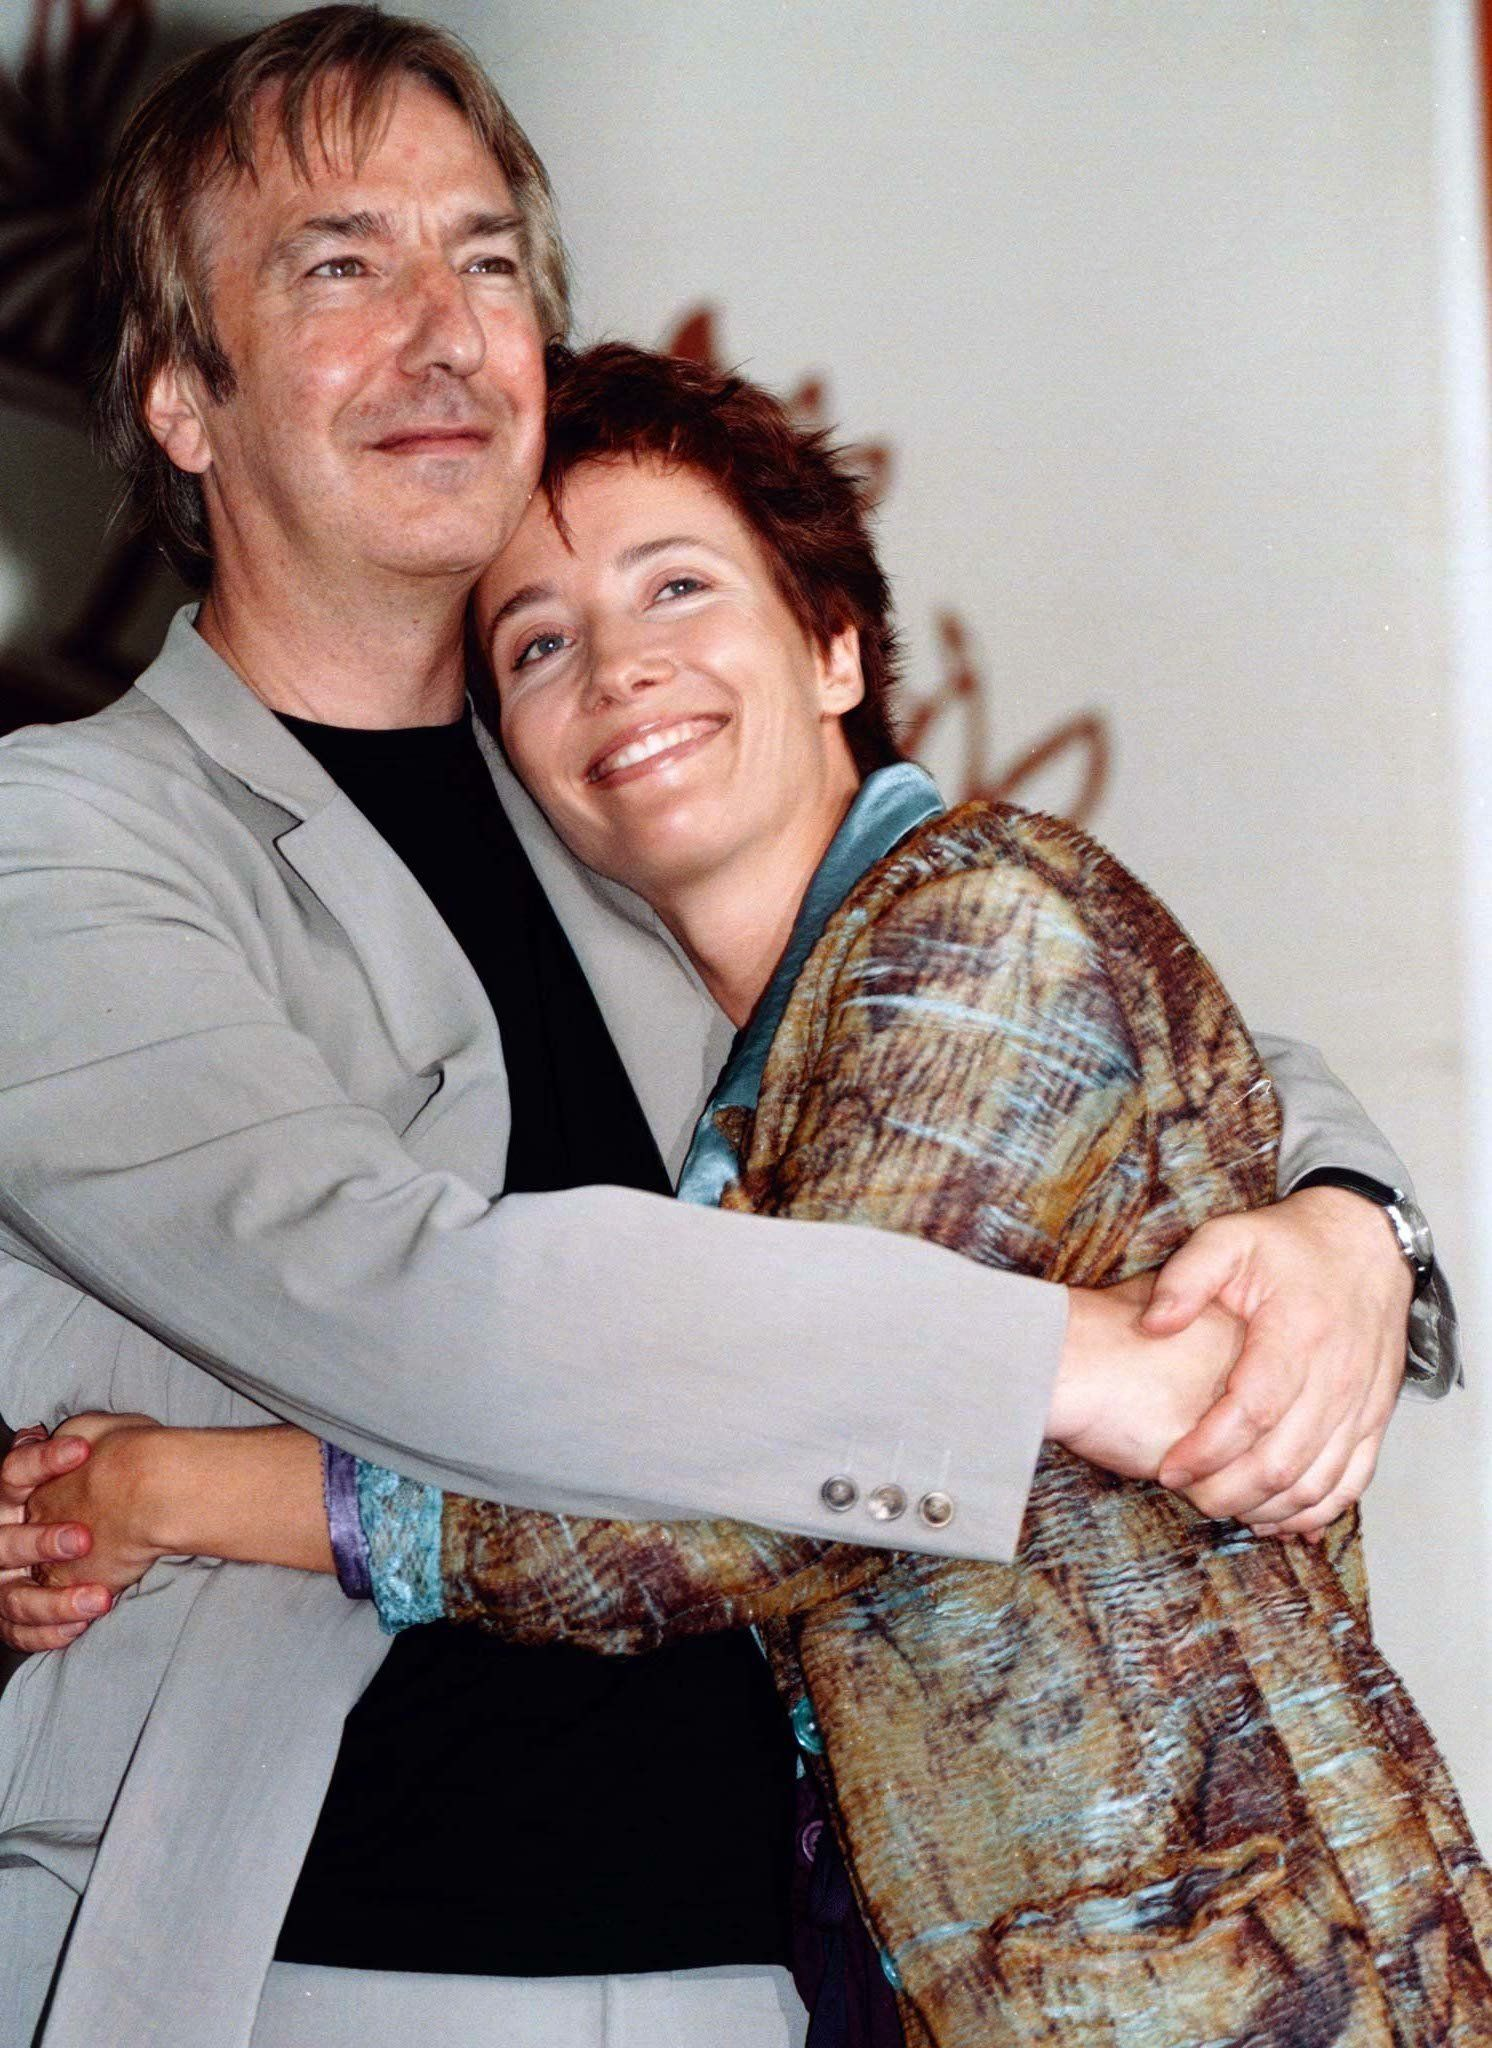 Alan Rickman and Emma Thompson embrace at the Venice Film Festival in